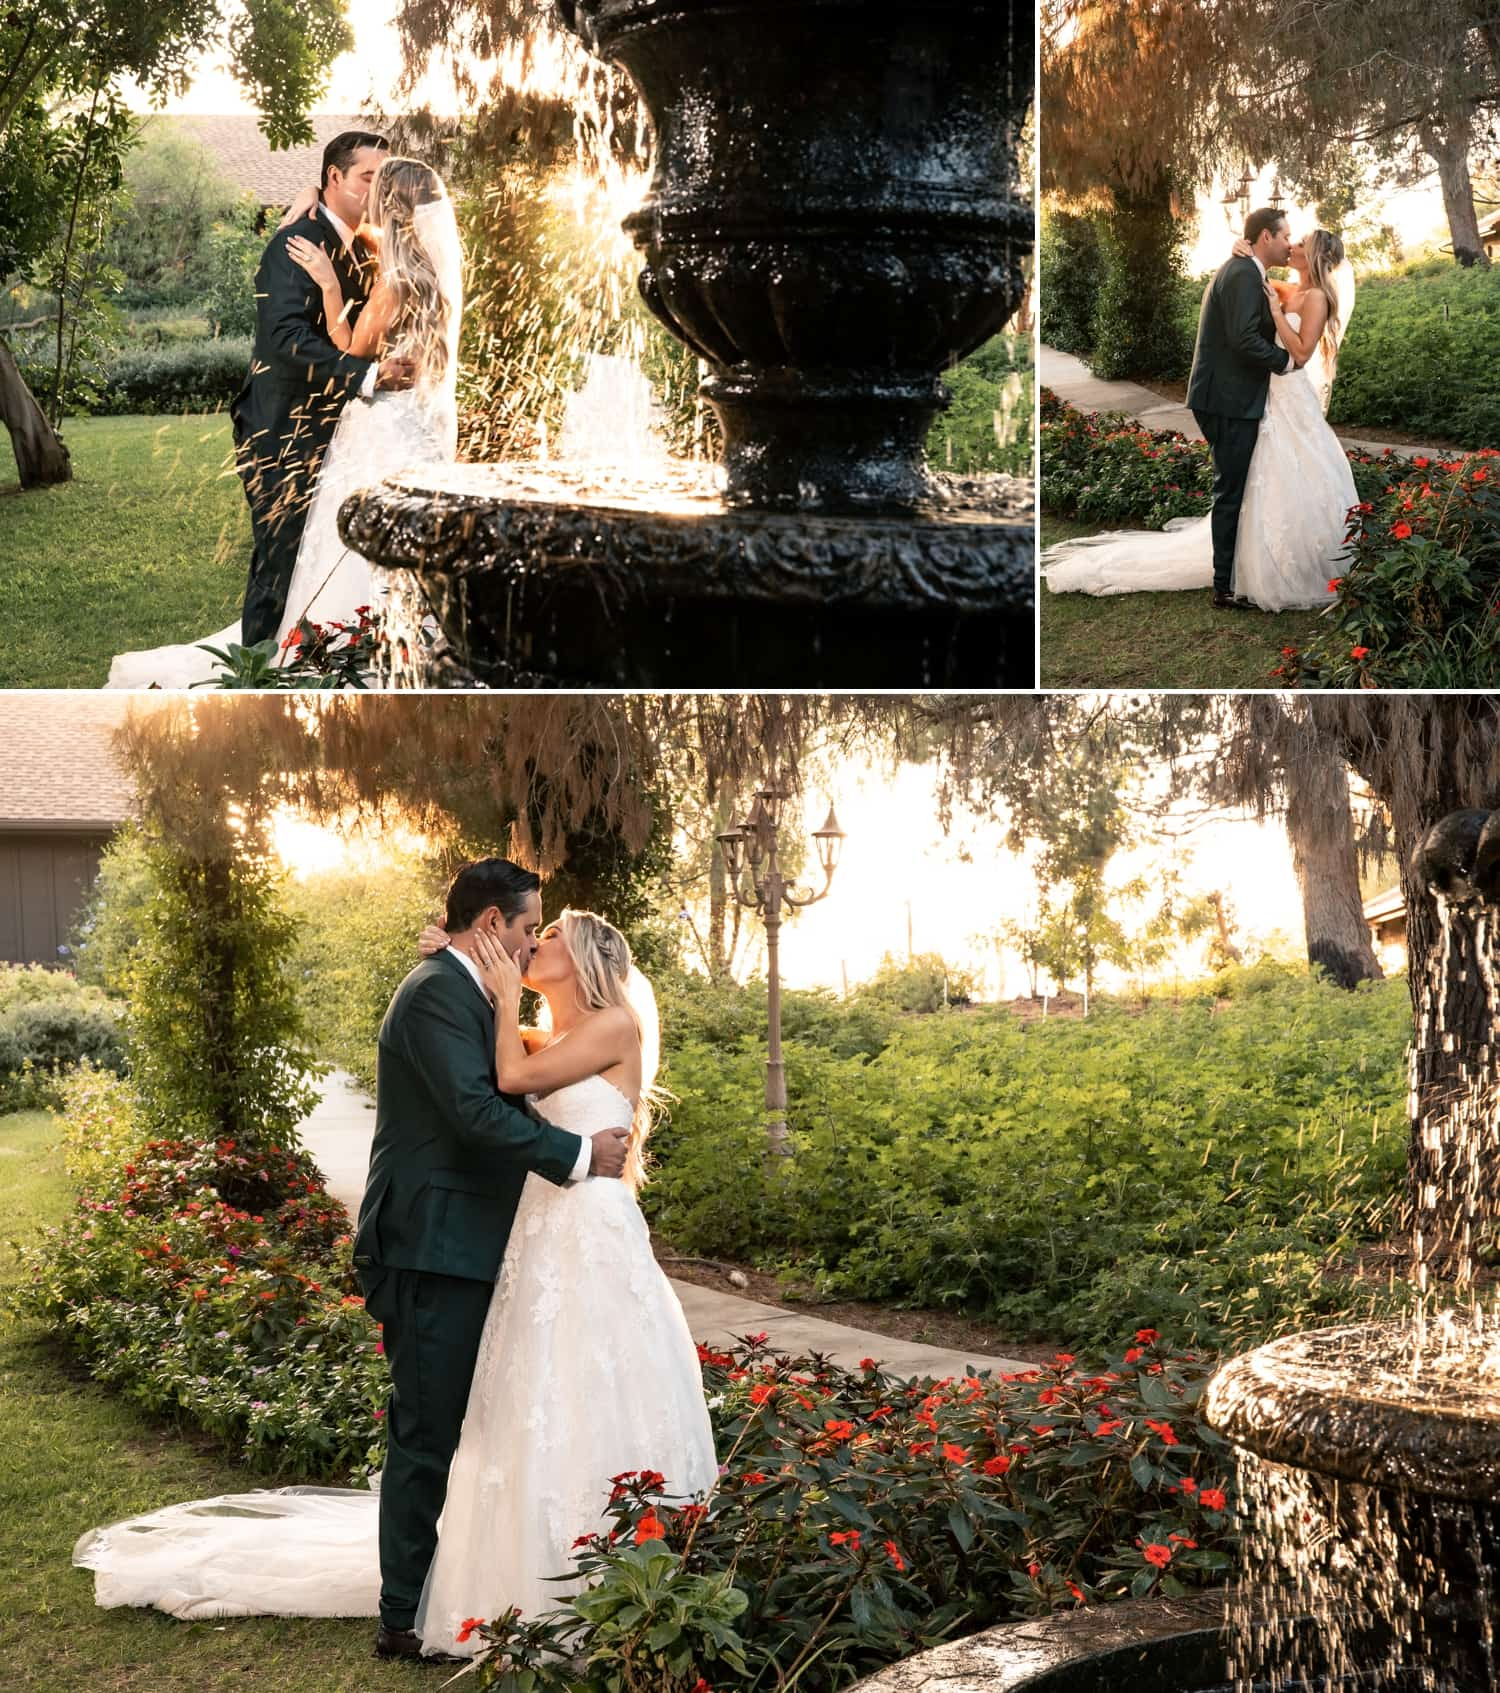 Bride and groom by the water fountain at Ethereal Gardens.